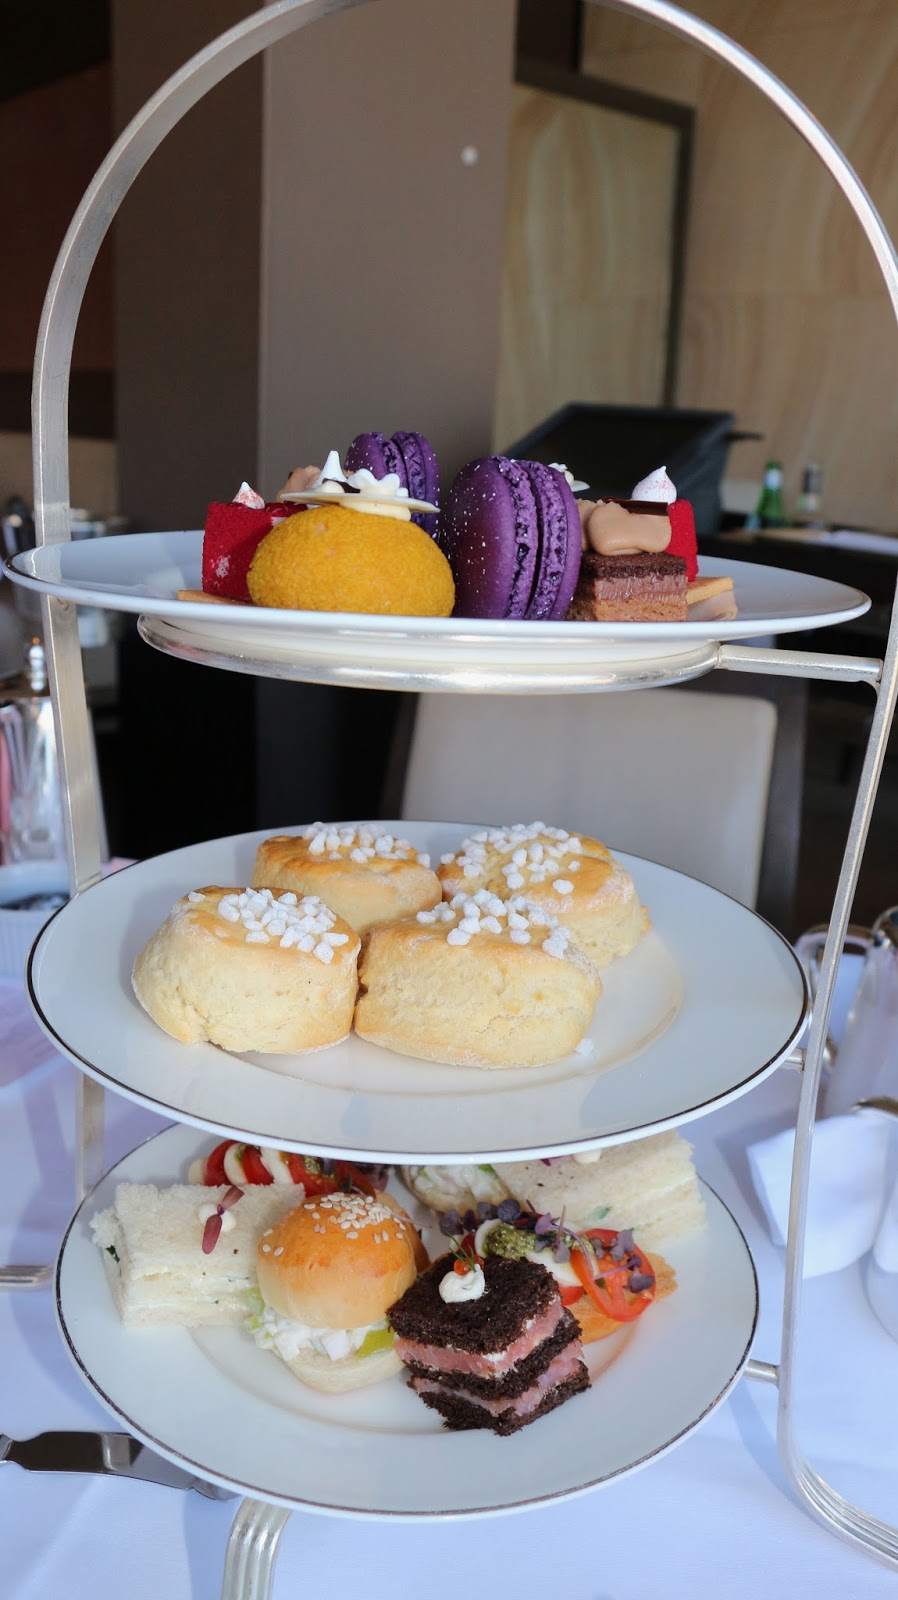 Park Hyatt High Tea review